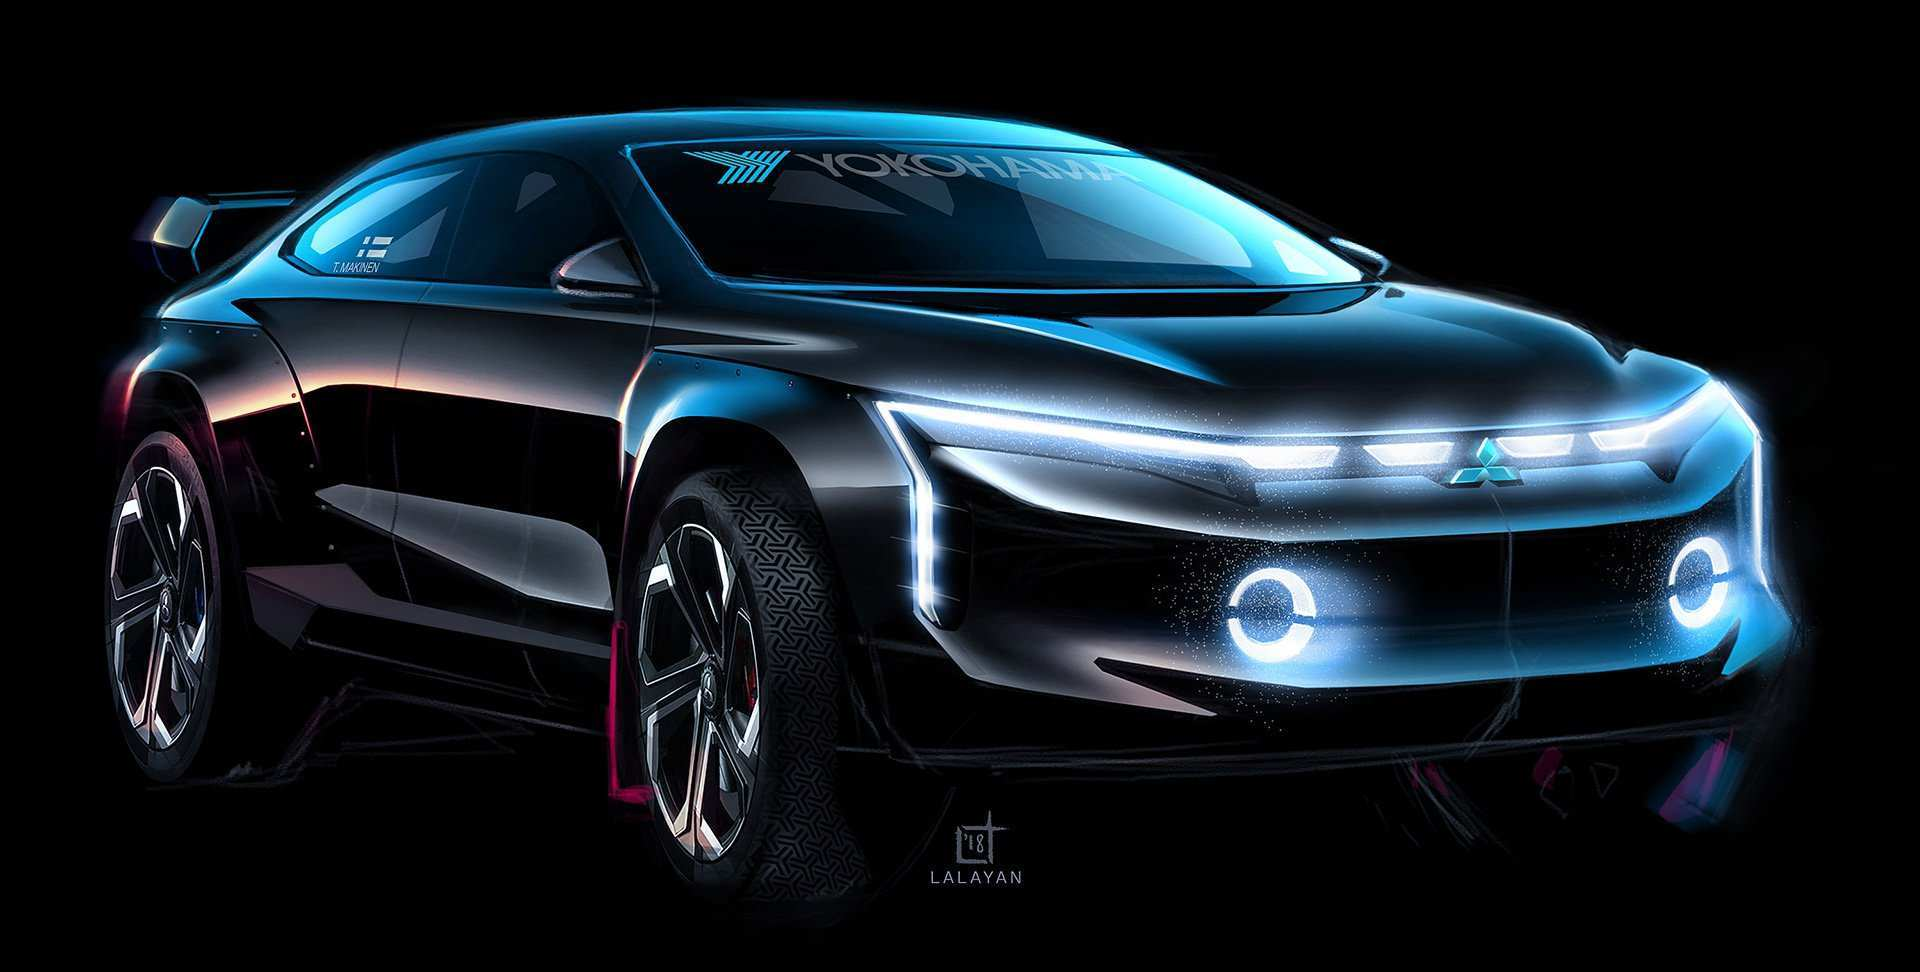 67 The Best Mitsubishi Concept 2020 Spy Shoot